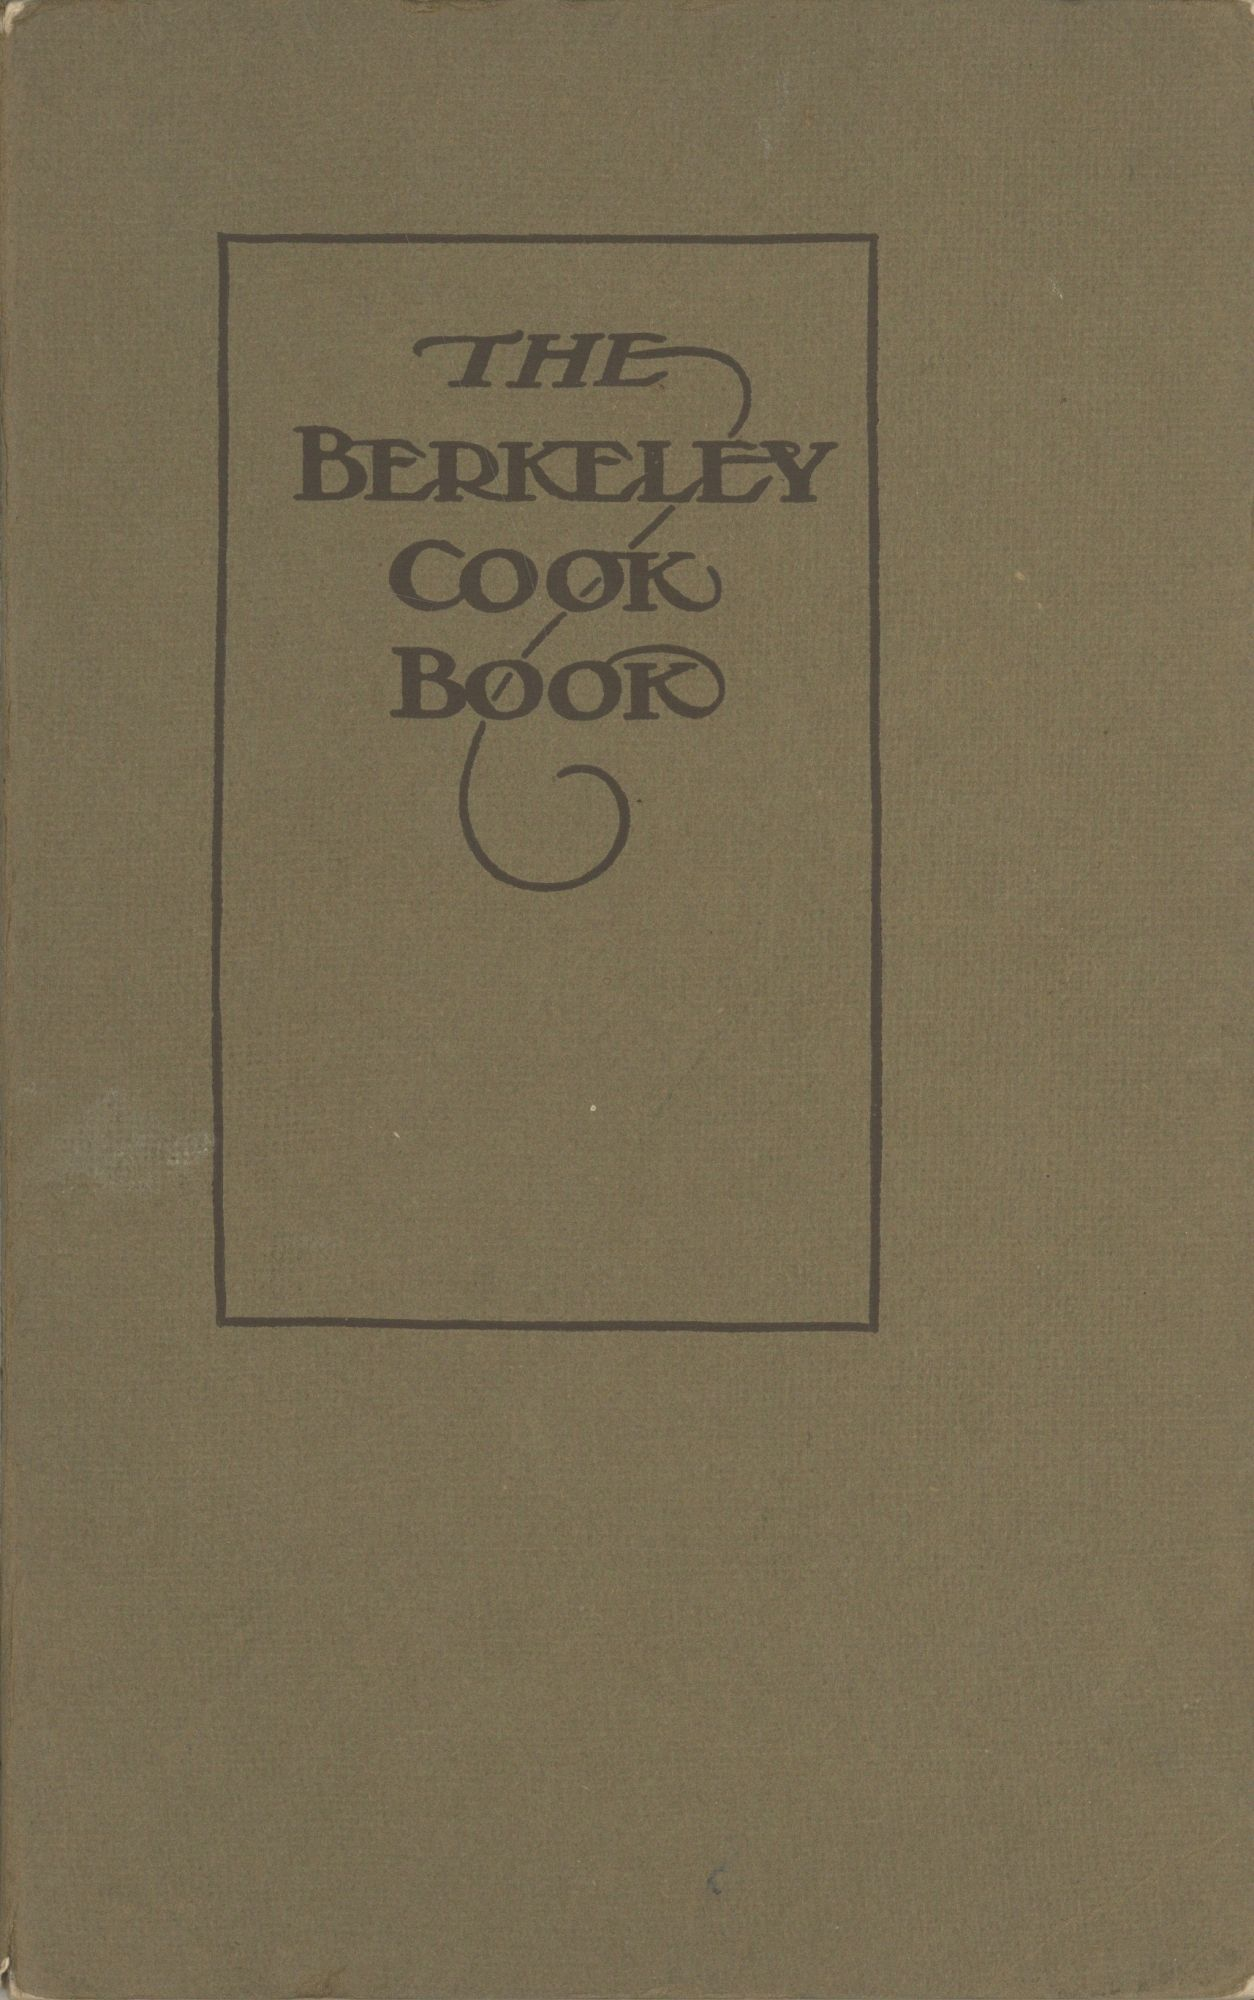 The Berkeley Cook Book. Four Hundred Practical Receipts Used by Berkeley Women. Compiled by the Women's Association of the First Congregational Church. First Congregational Church, Women's Association, Calif Berkeley.